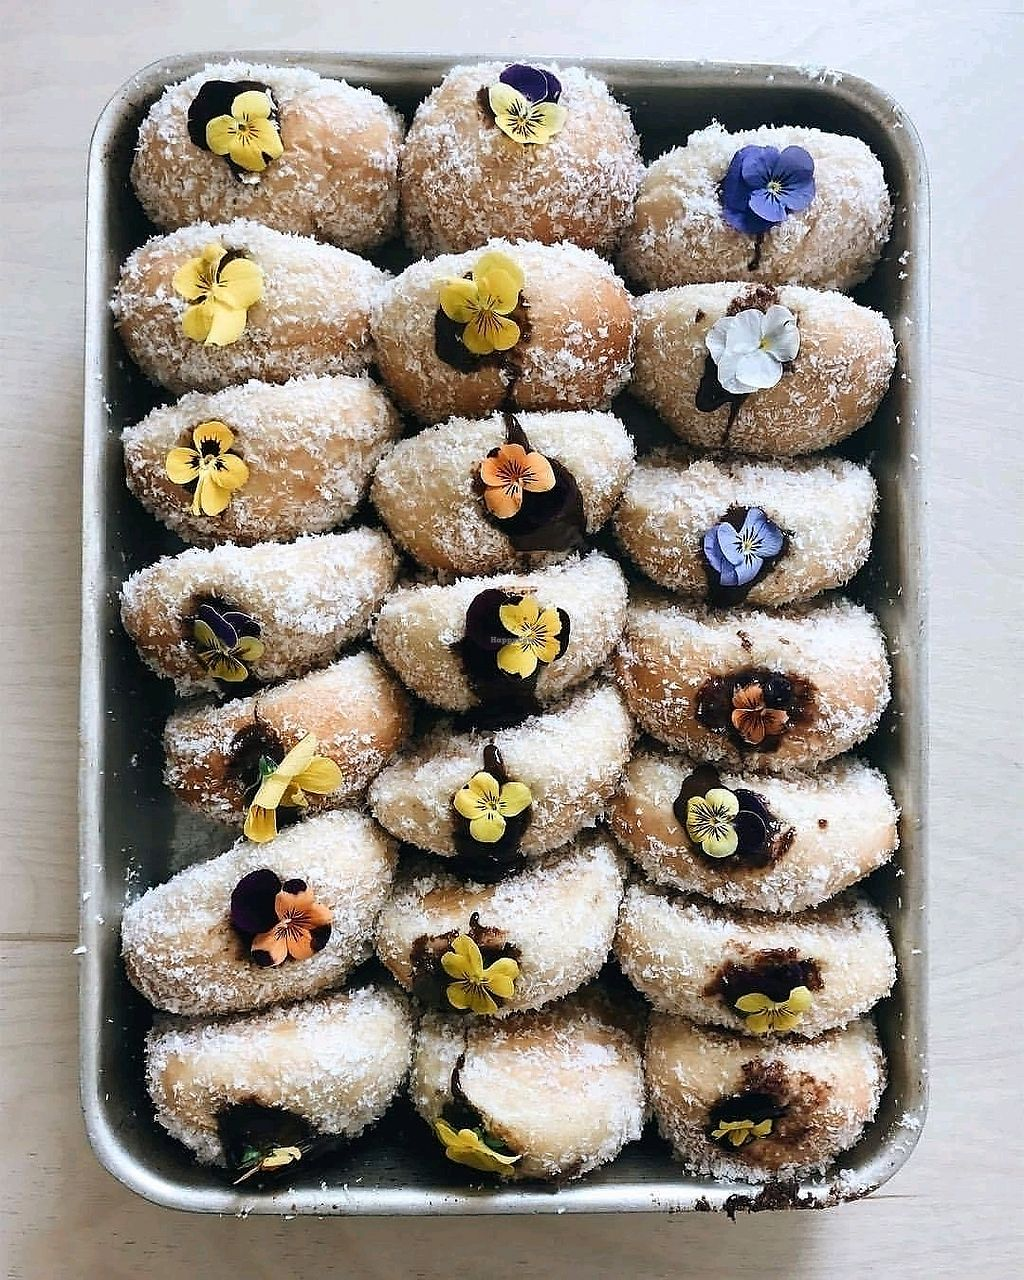 """Photo of Upshot Espresso  by <a href=""""/members/profile/Meaks"""">Meaks</a> <br/>Dark chocolate and coconut doughnuts <br/> November 27, 2017  - <a href='/contact/abuse/image/105502/329550'>Report</a>"""